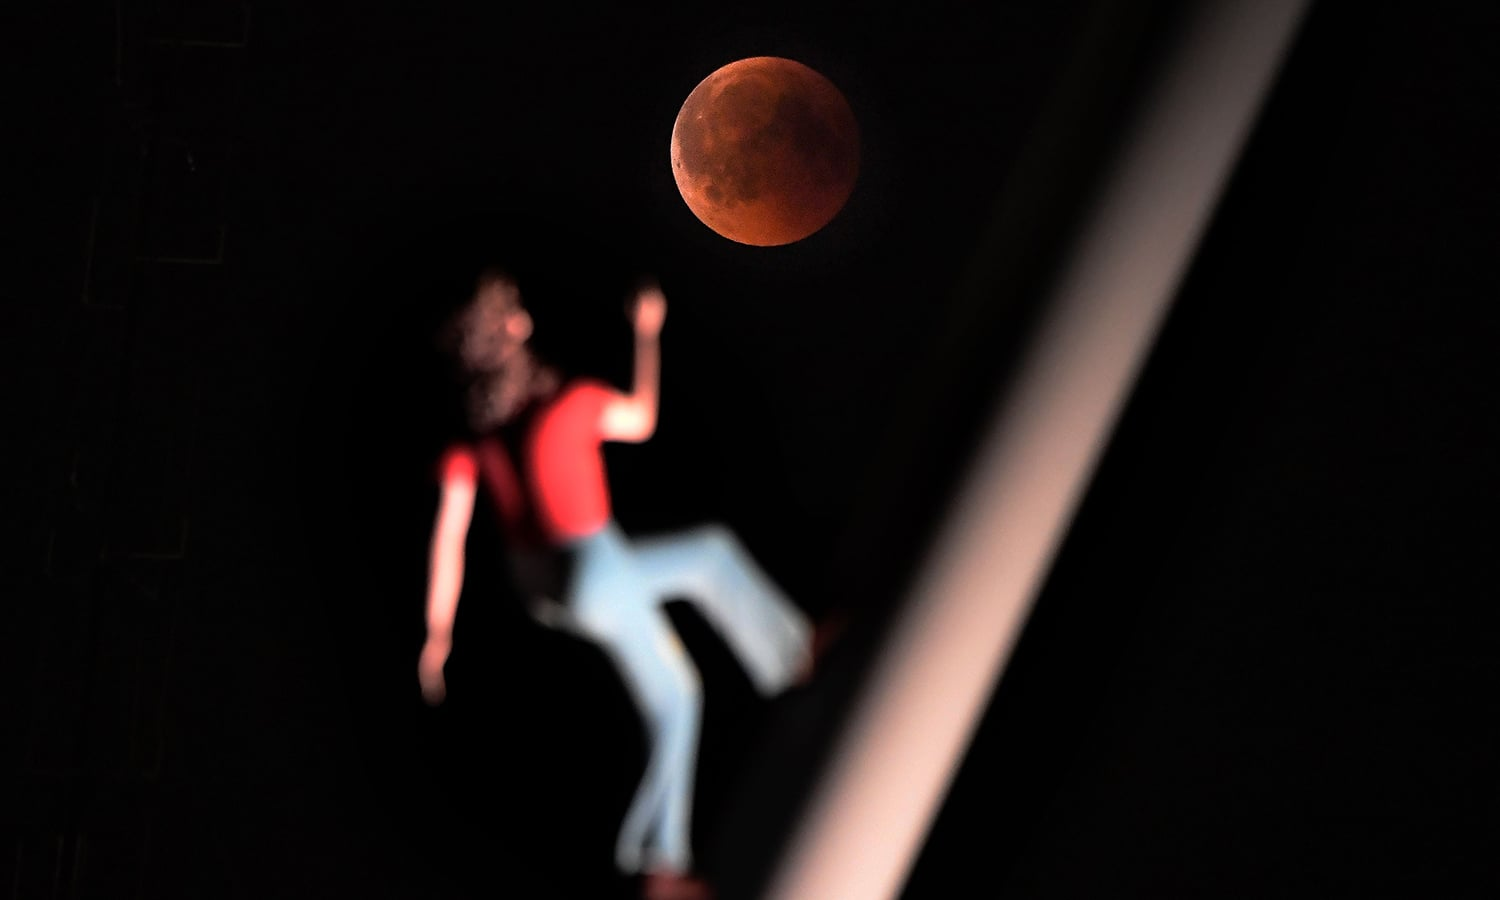 """A """"blood moon"""" eclipse is pictured with a sculpture by the American artist Jonathan Borofsky """"Woman walking to the sky"""" in Strasbourg, eastern France. — AFP"""